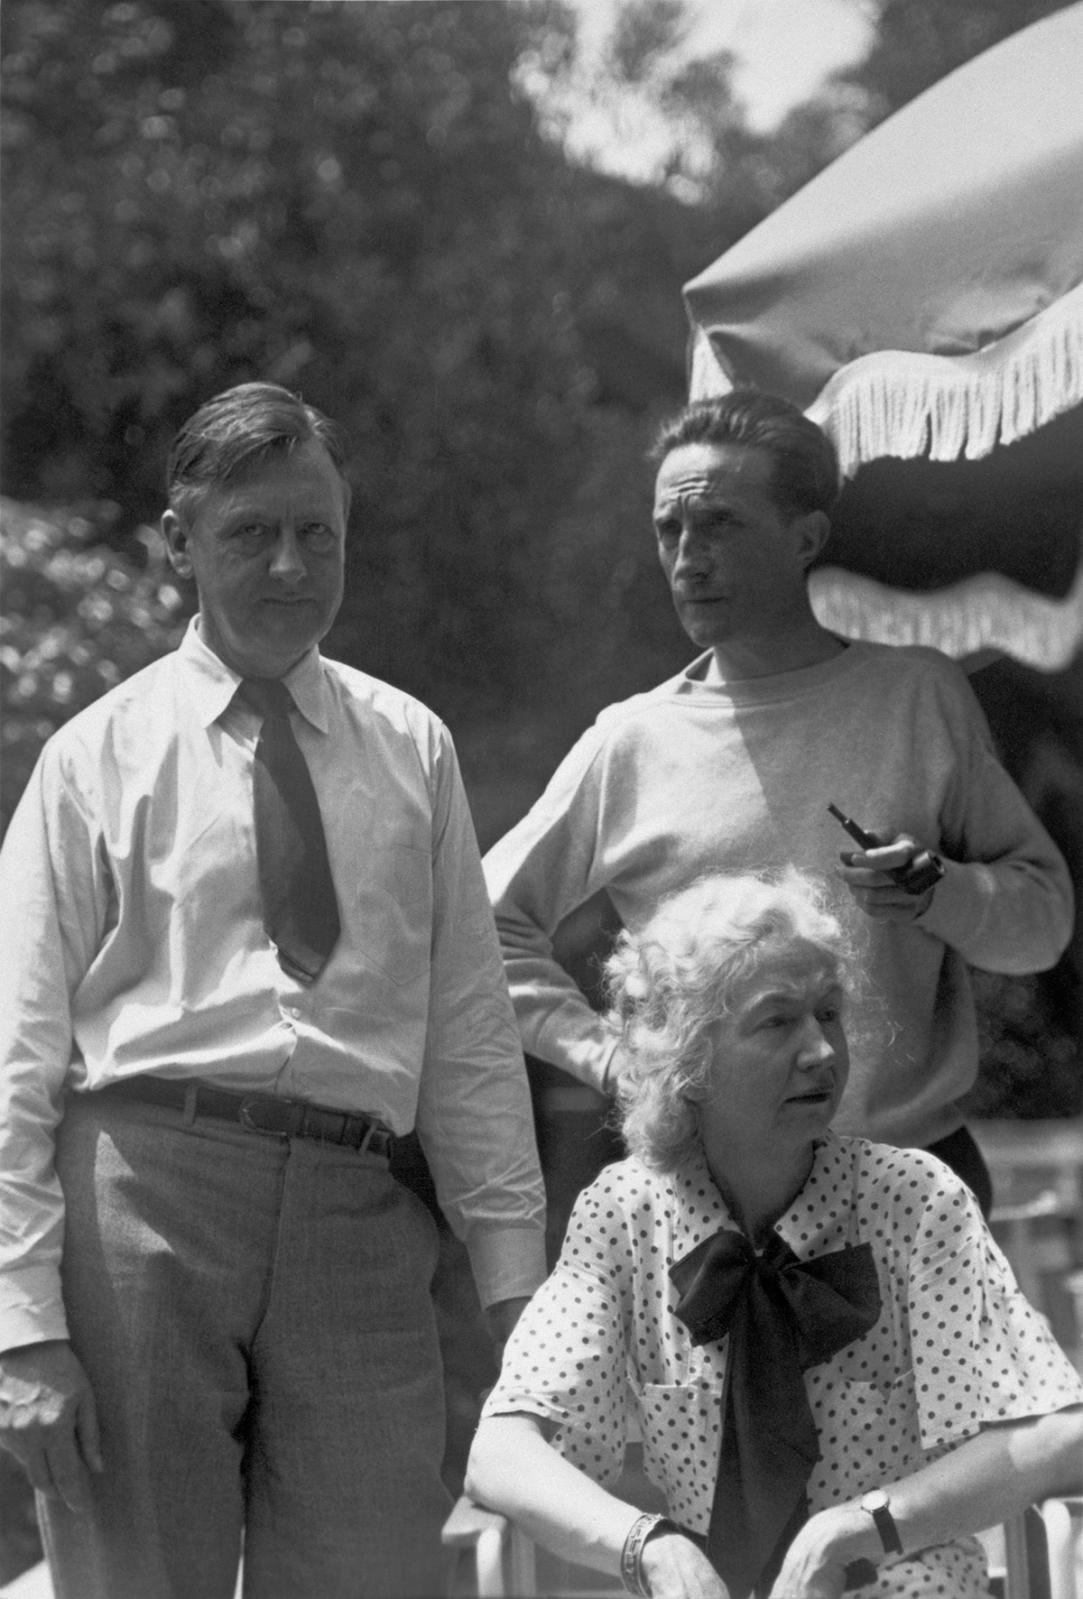 Photograph by Beatrice Wood (1893-1998), Louise Arensberg, Walter Arensberg, and Marcel Duchamp in the garden at 7065 Hillside Avenue, Los